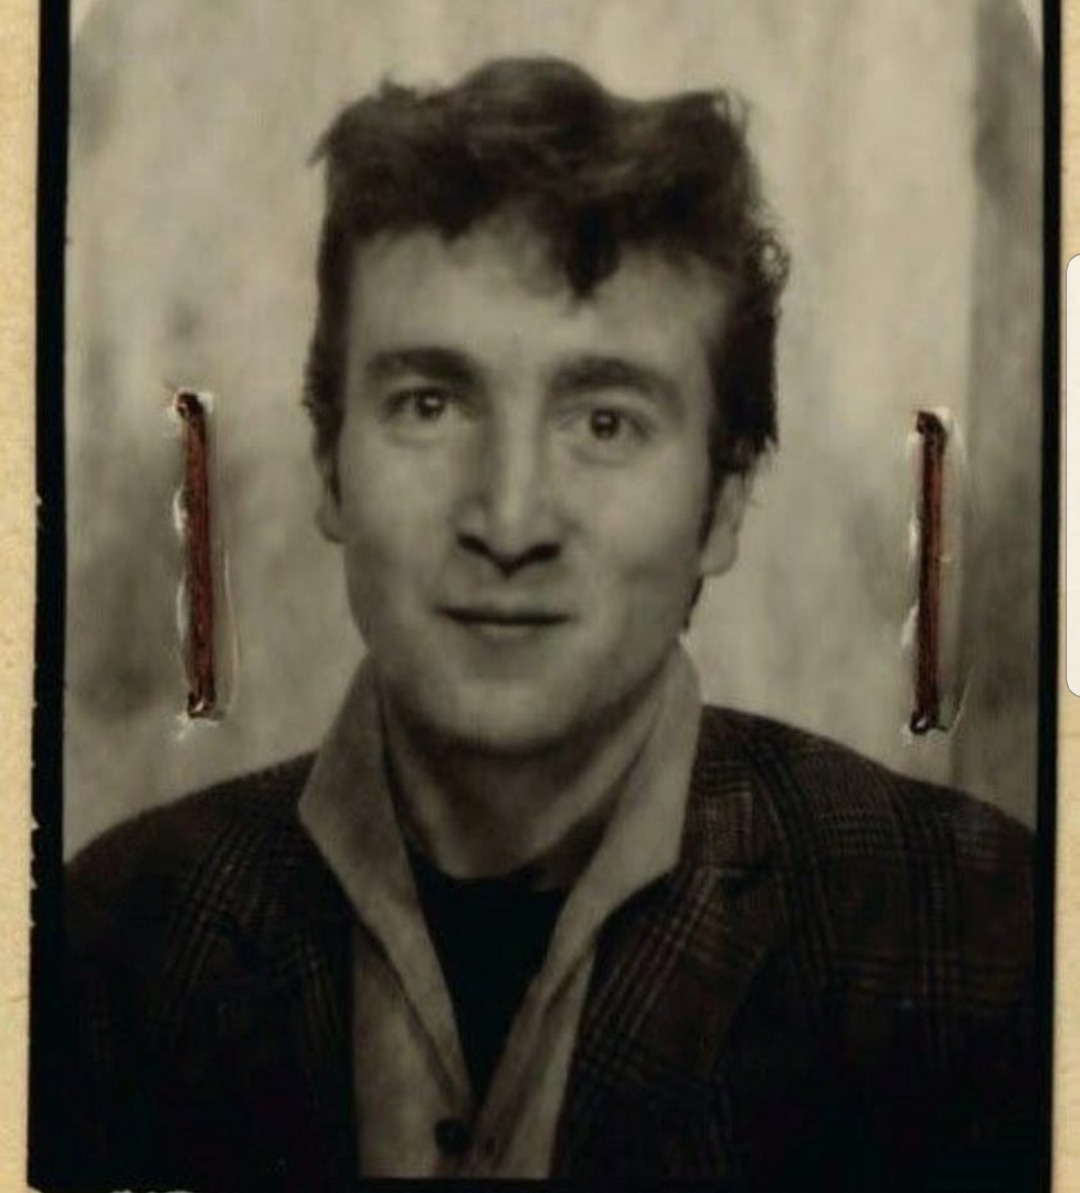 ID picture of #JohnLennon from hos passport, 1960 #TheBeatles